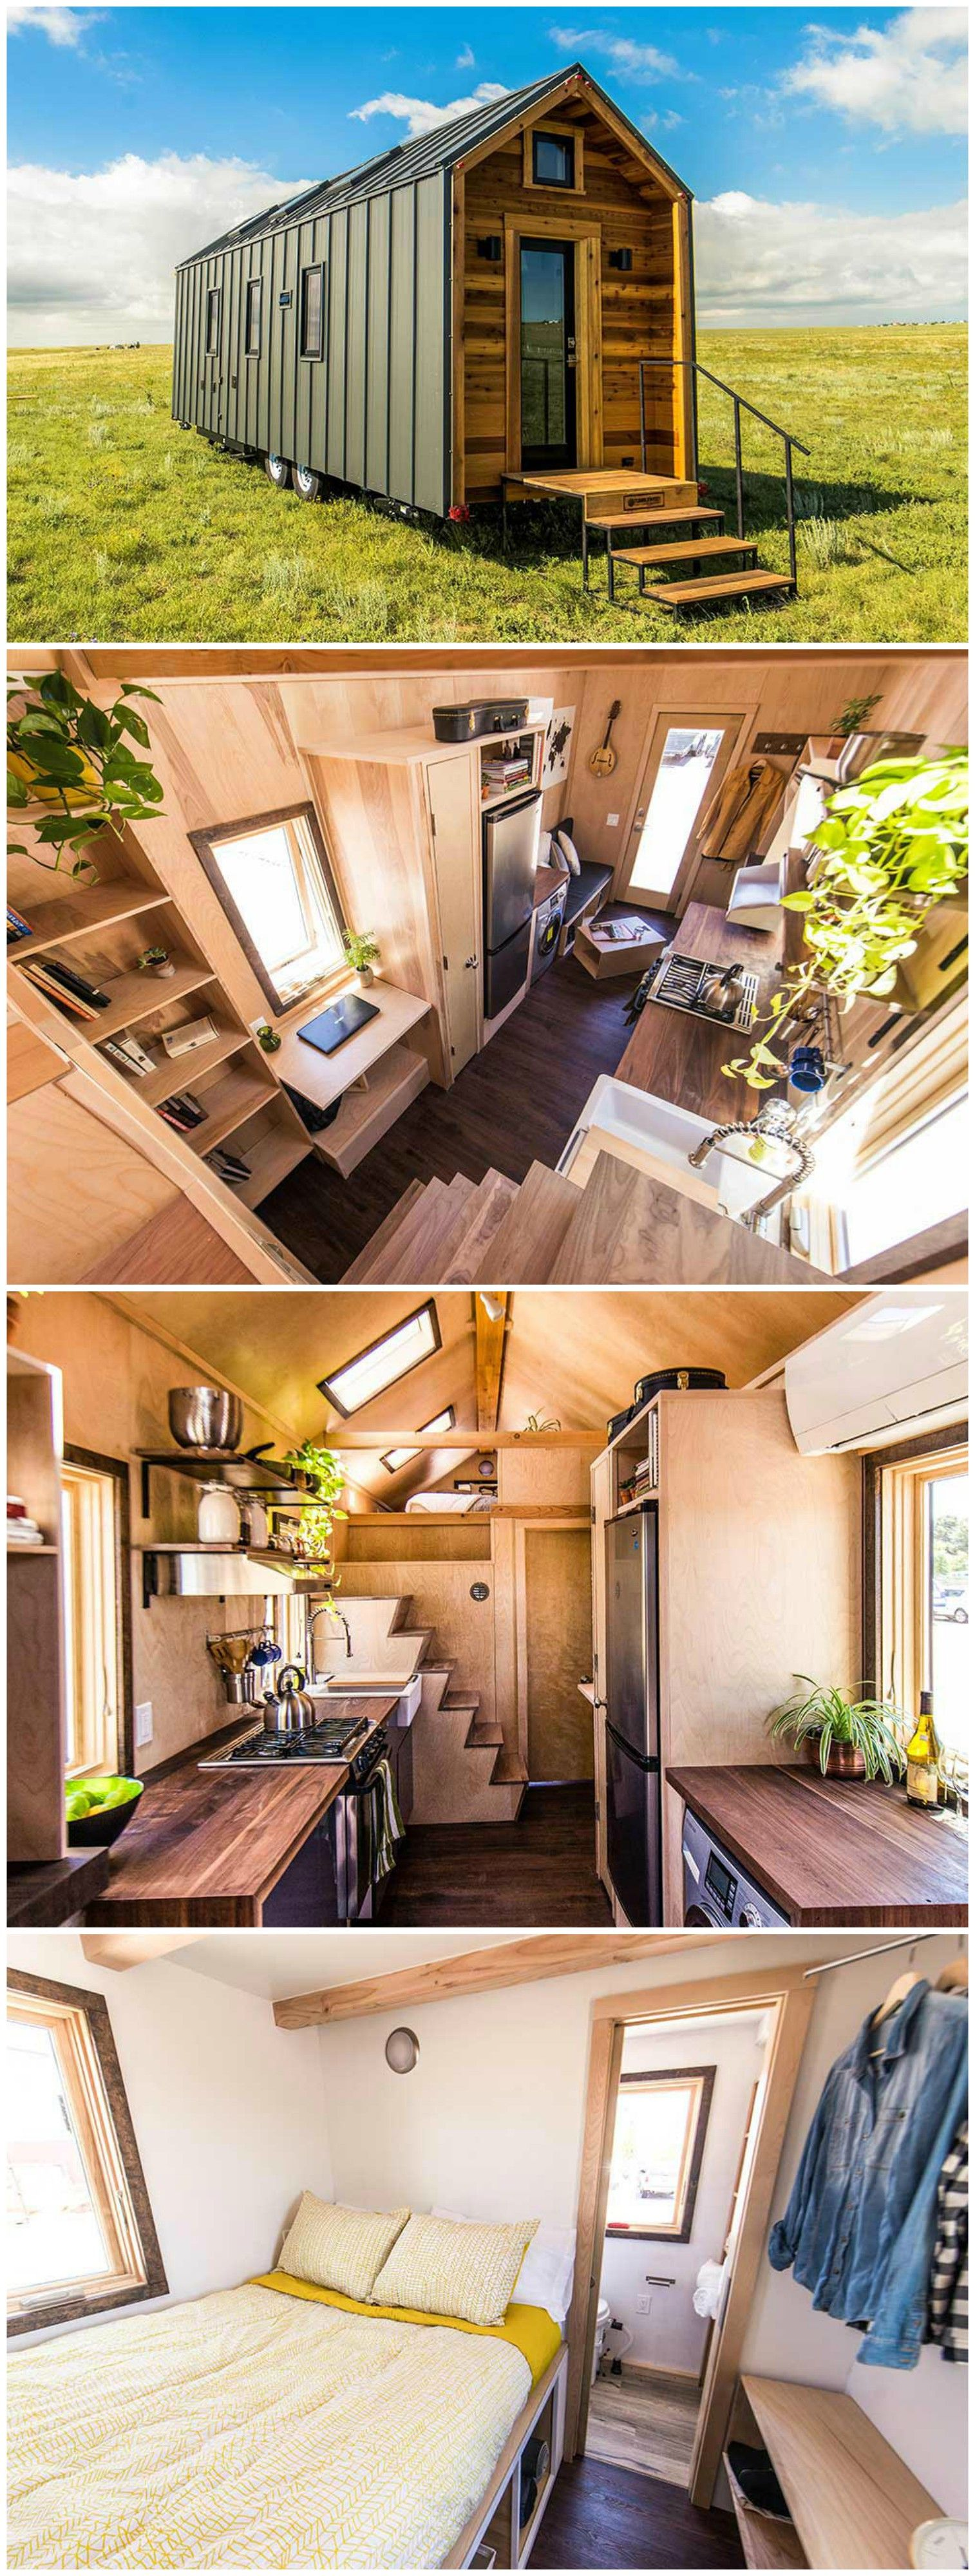 Farallon Is A Beautiful Tiny House Built By Tumbleweed